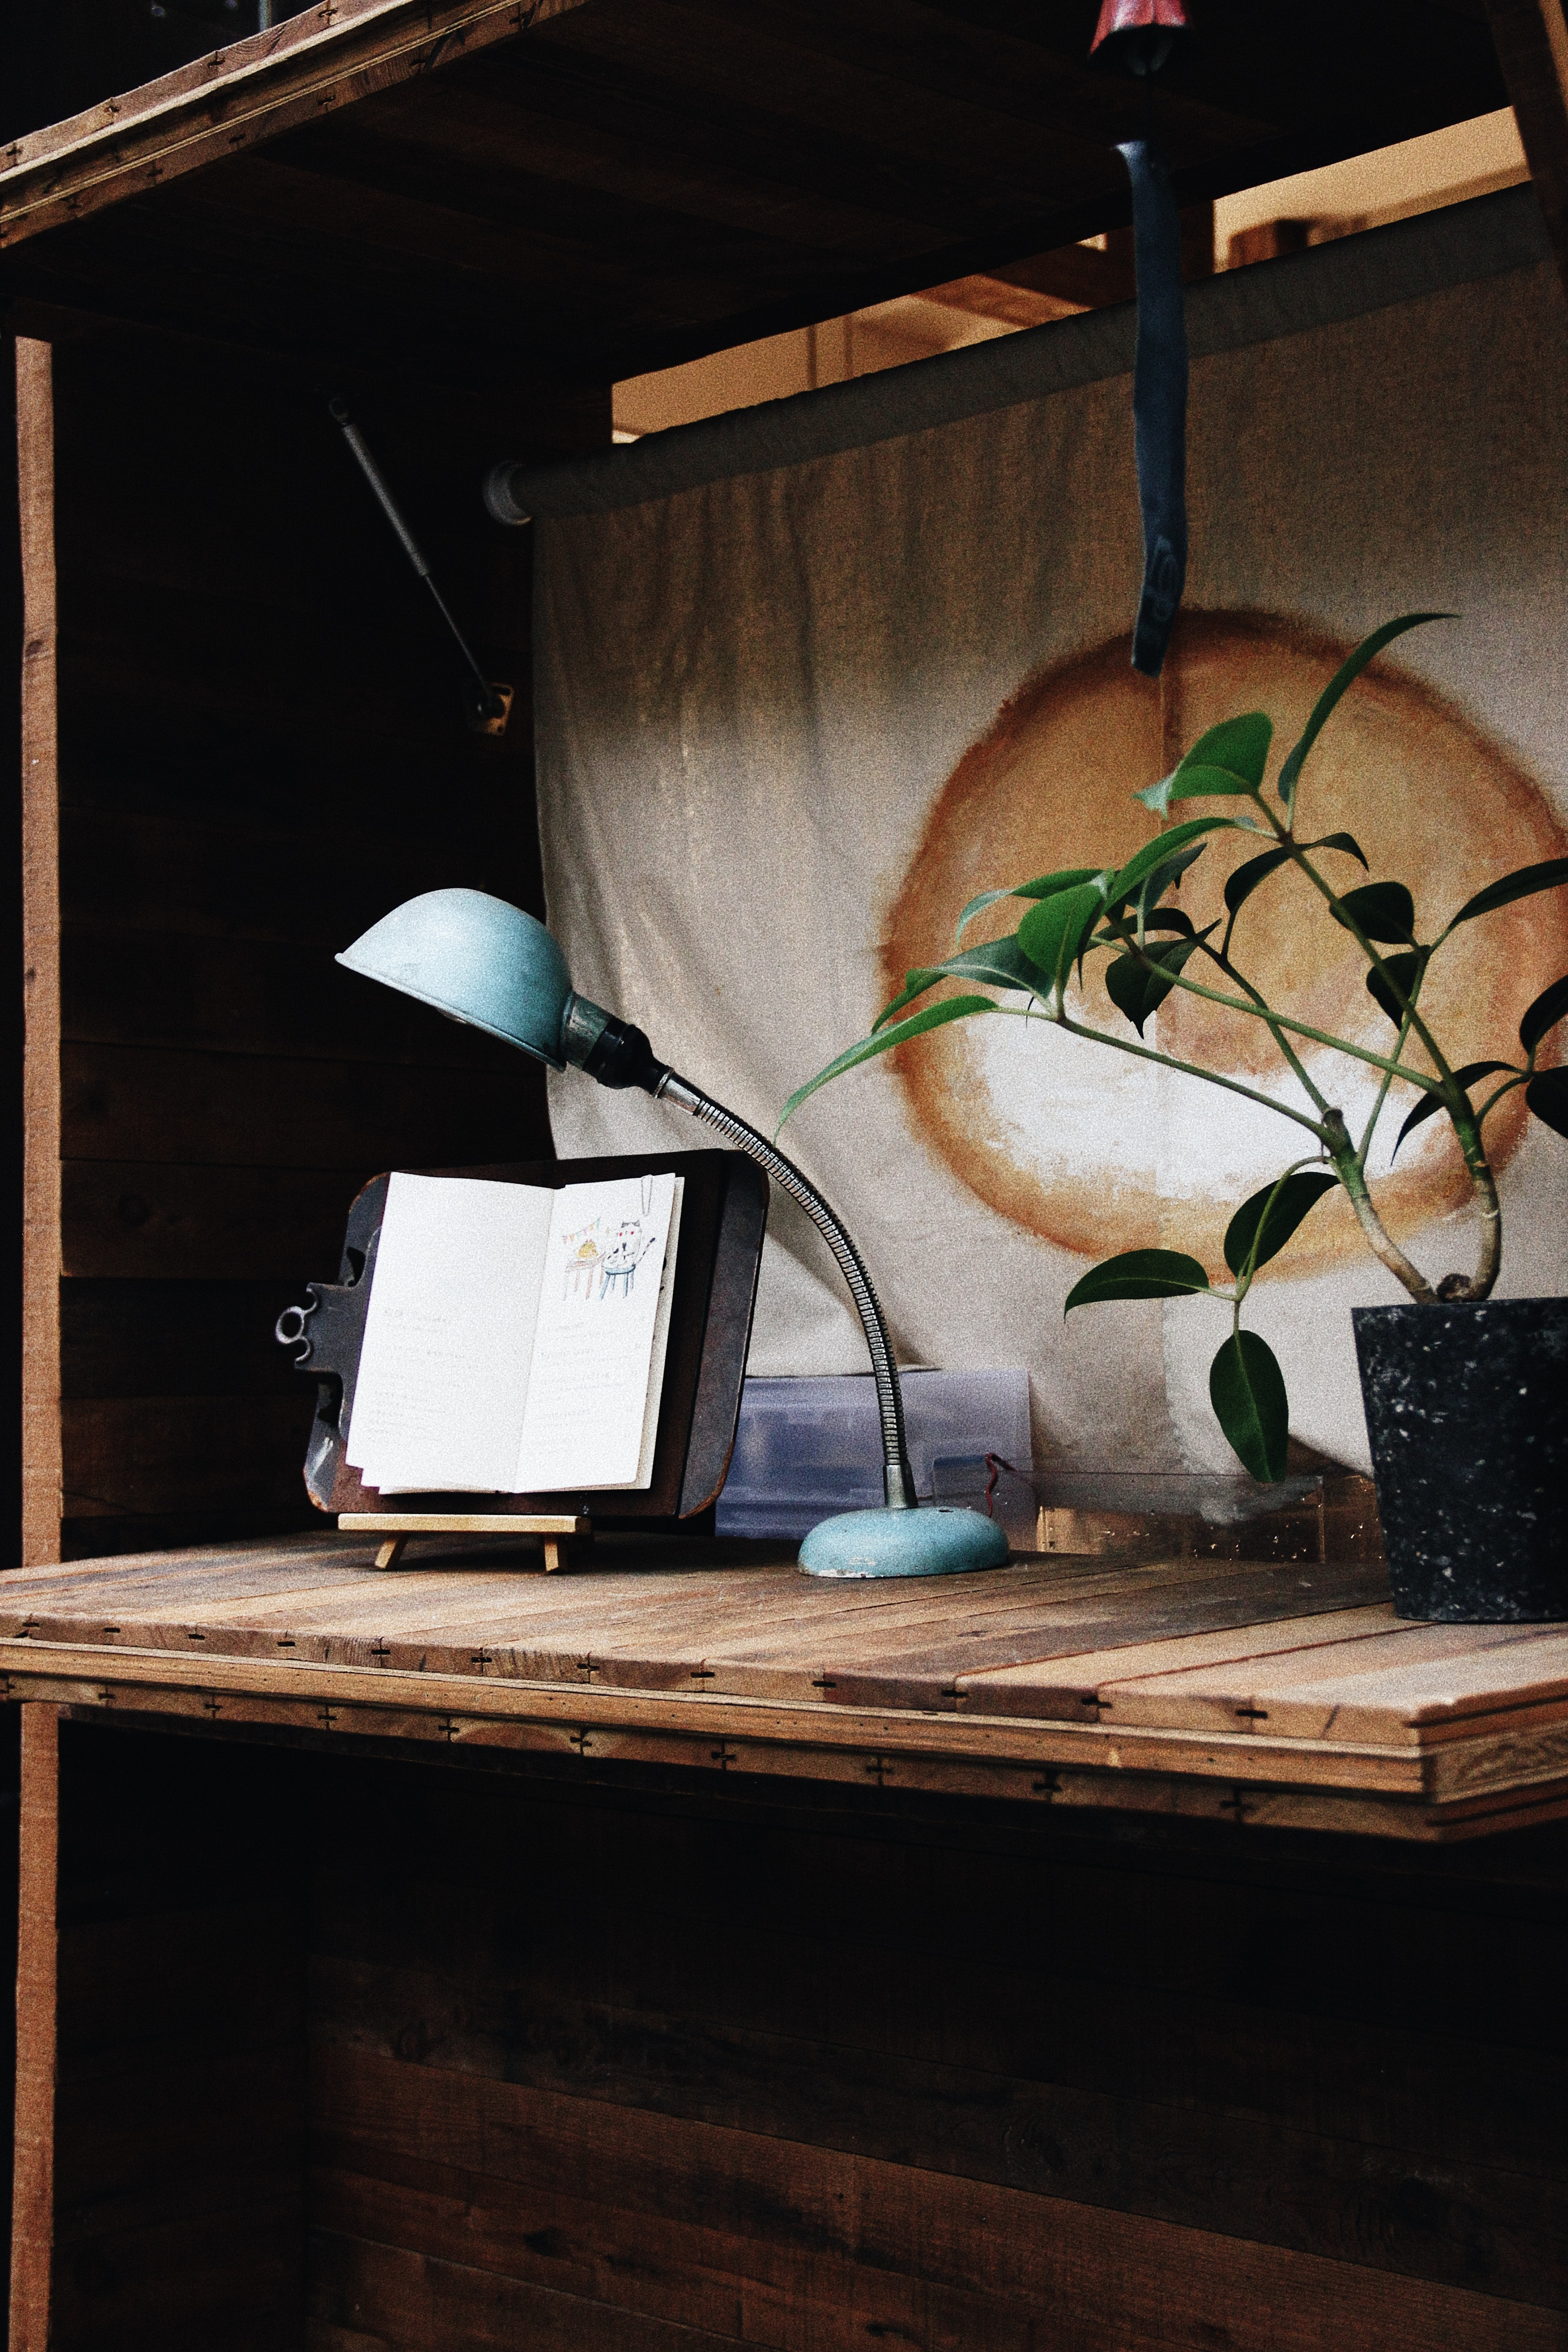 A vintage desk with an open notebook, a potted plant and a lamp